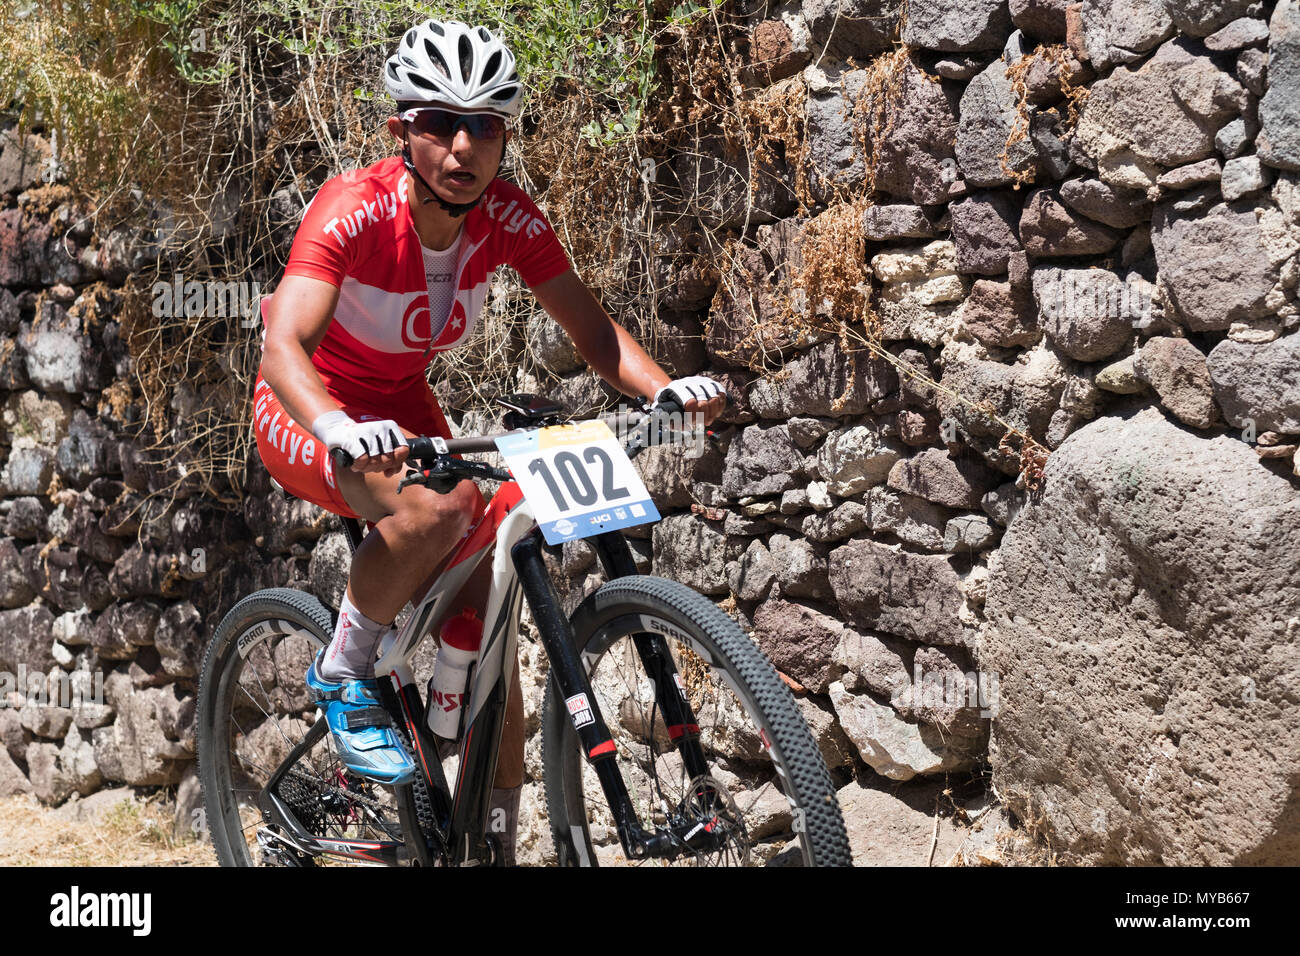 Female Turkish cyclist competes in an international mountain bike race in the Greek village of Molyvos on the island of Lesvos - Stock Image